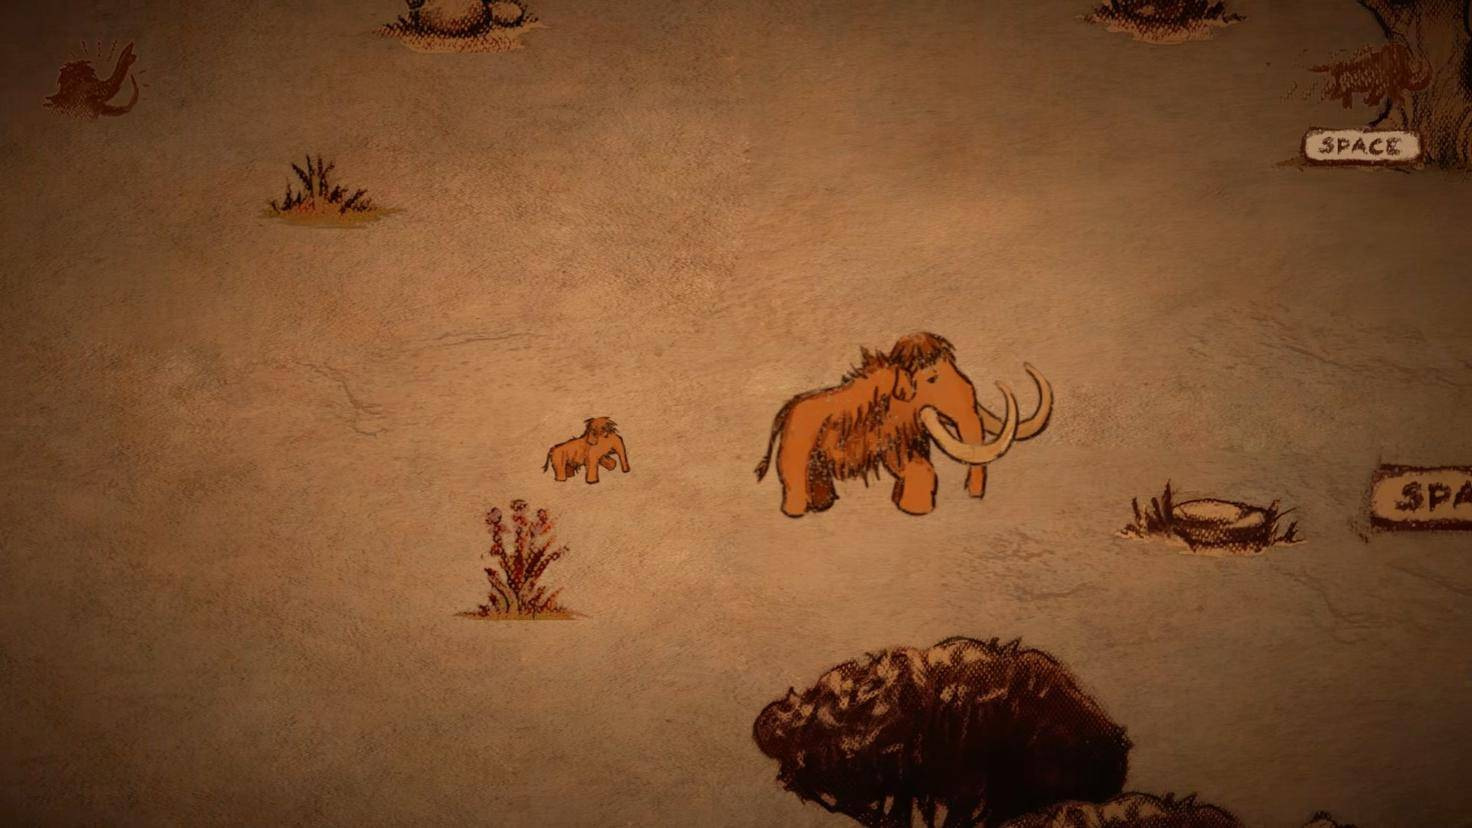 The Mammoth A Cace Painting Android App